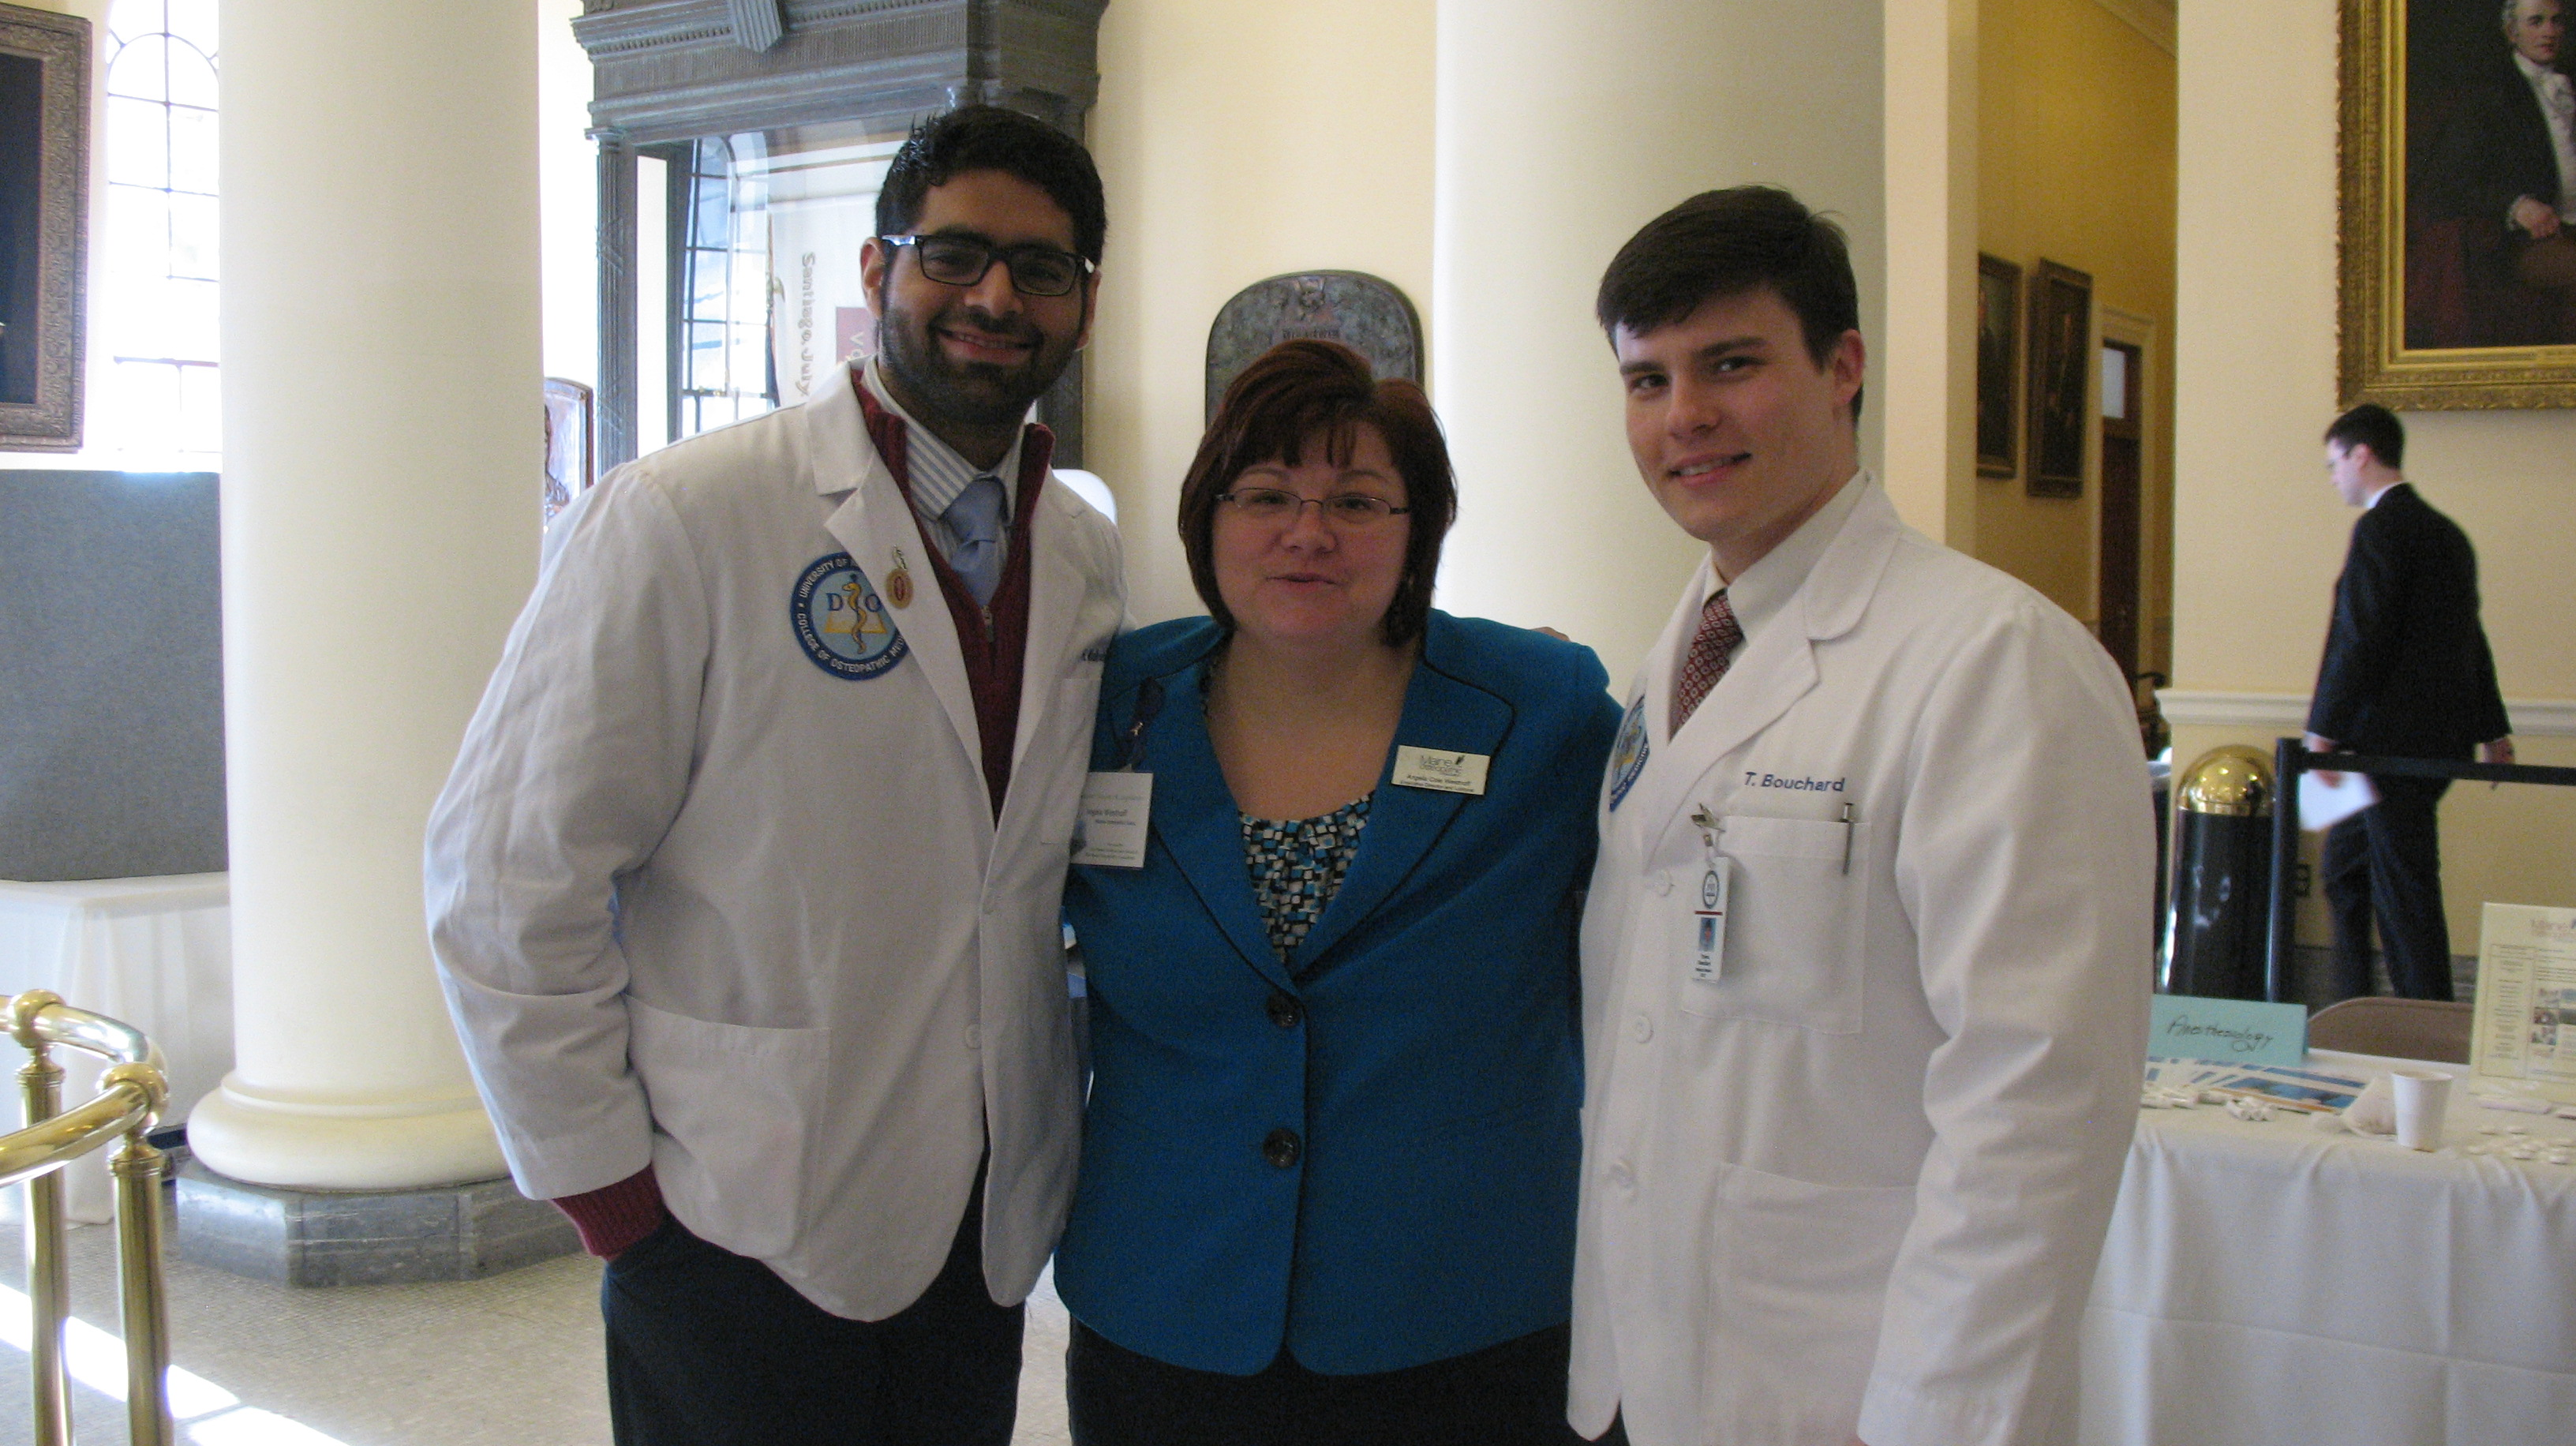 Angela Westhoff, Executive Director, Maine Osteopathic Association, with two UNECOM students.